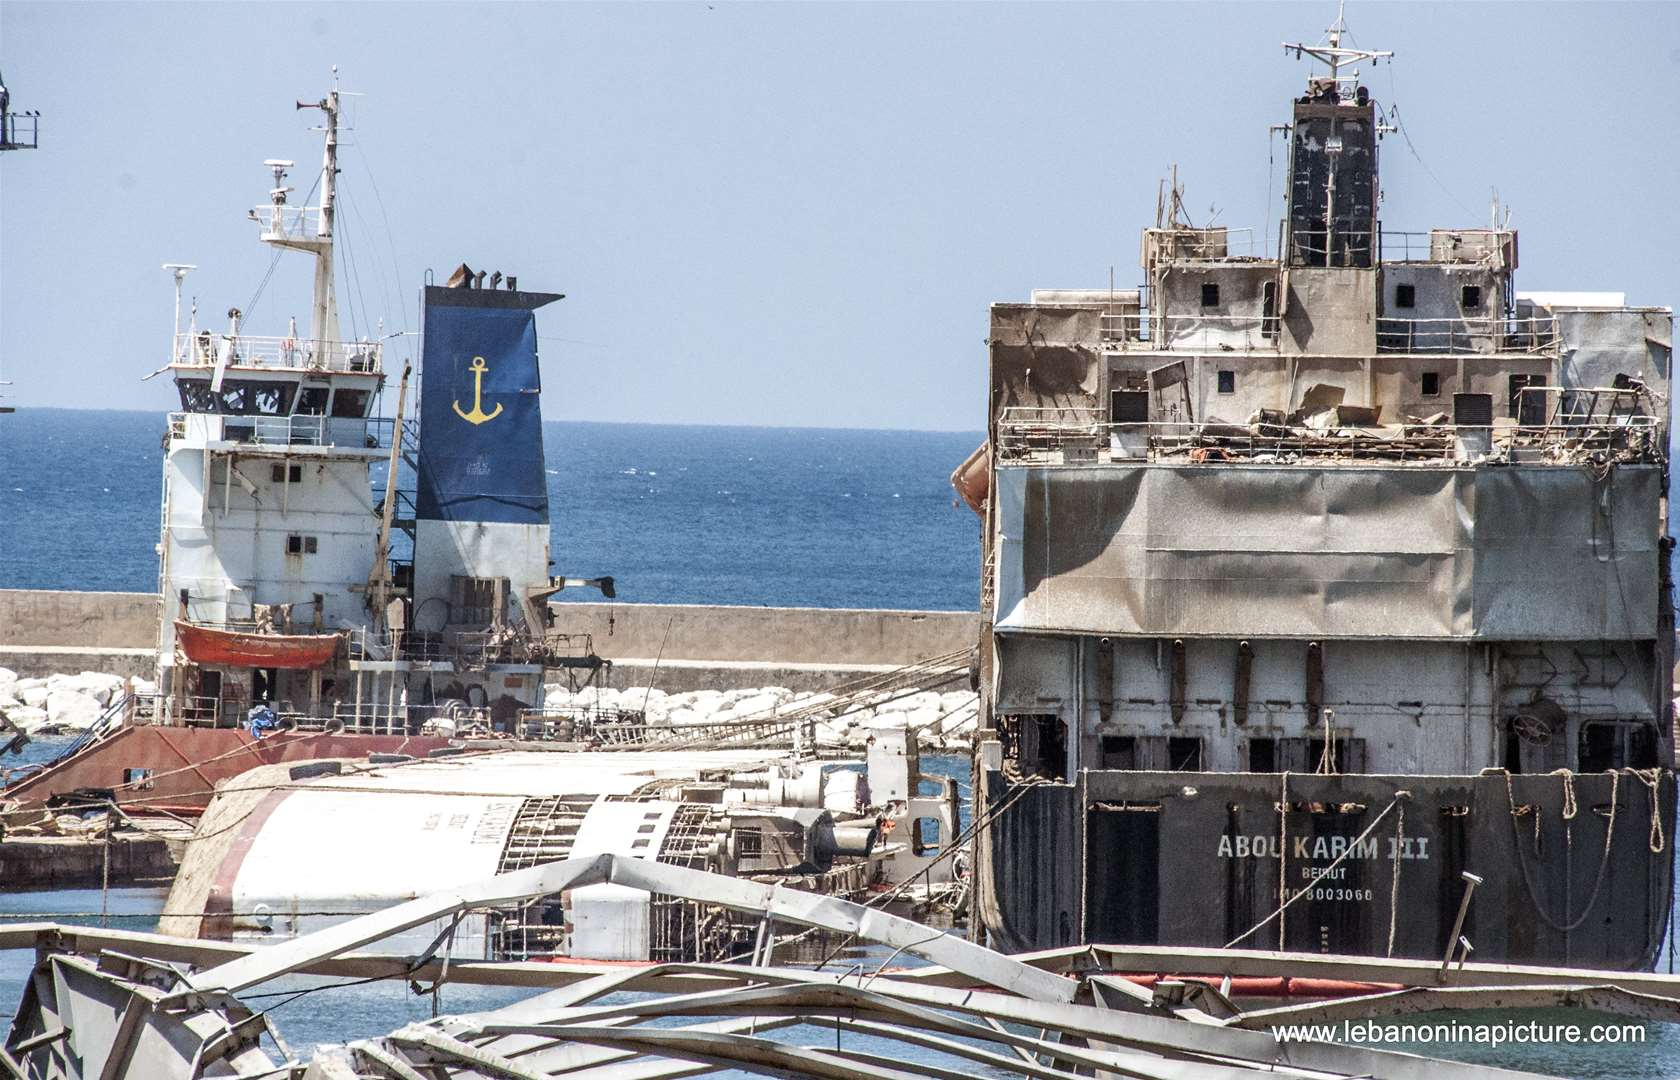 Abou Karim Ship next to the Almost drown Orient Queen next to the Beirut Port Explosion Area